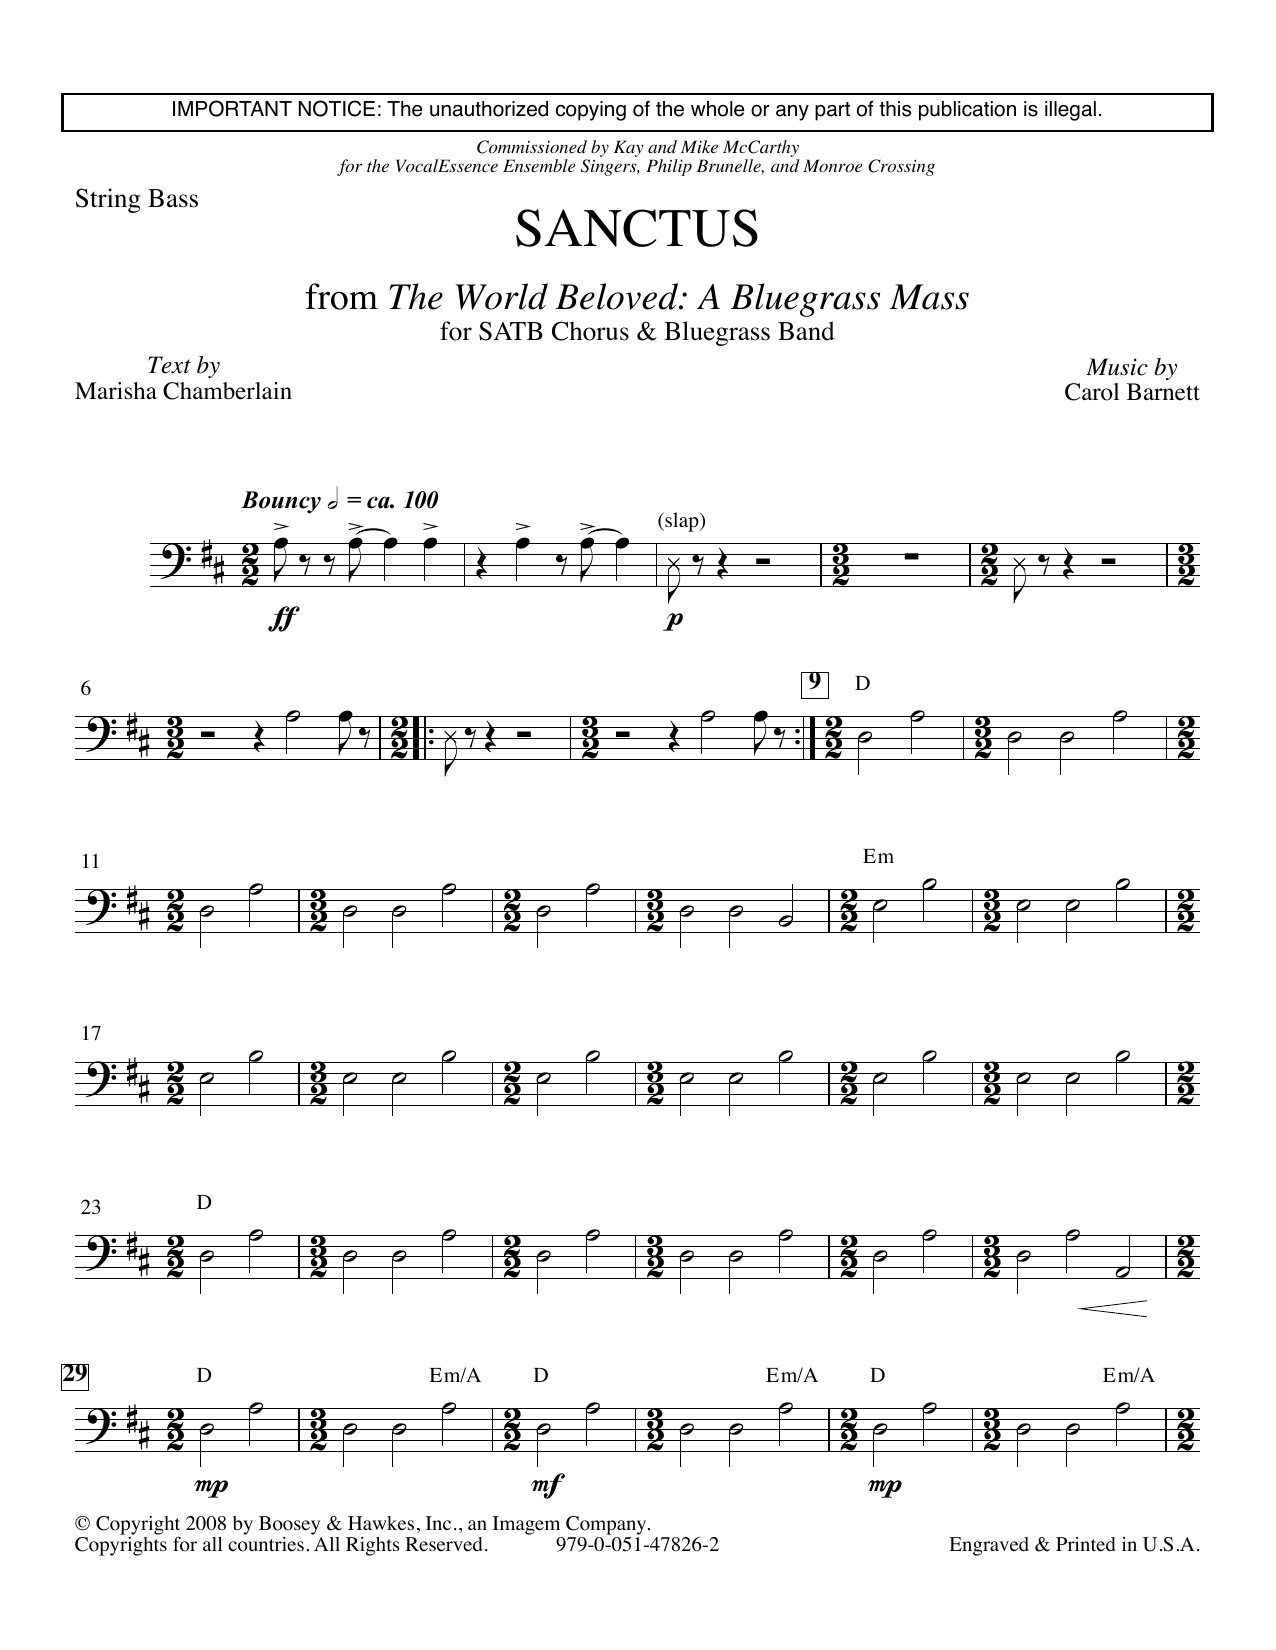 Carol Barnett Sanctus (from The World Beloved: A Bluegrass Mass) - Double Bass sheet music preview music notes and score for Choir Instrumental Pak including 3 page(s)